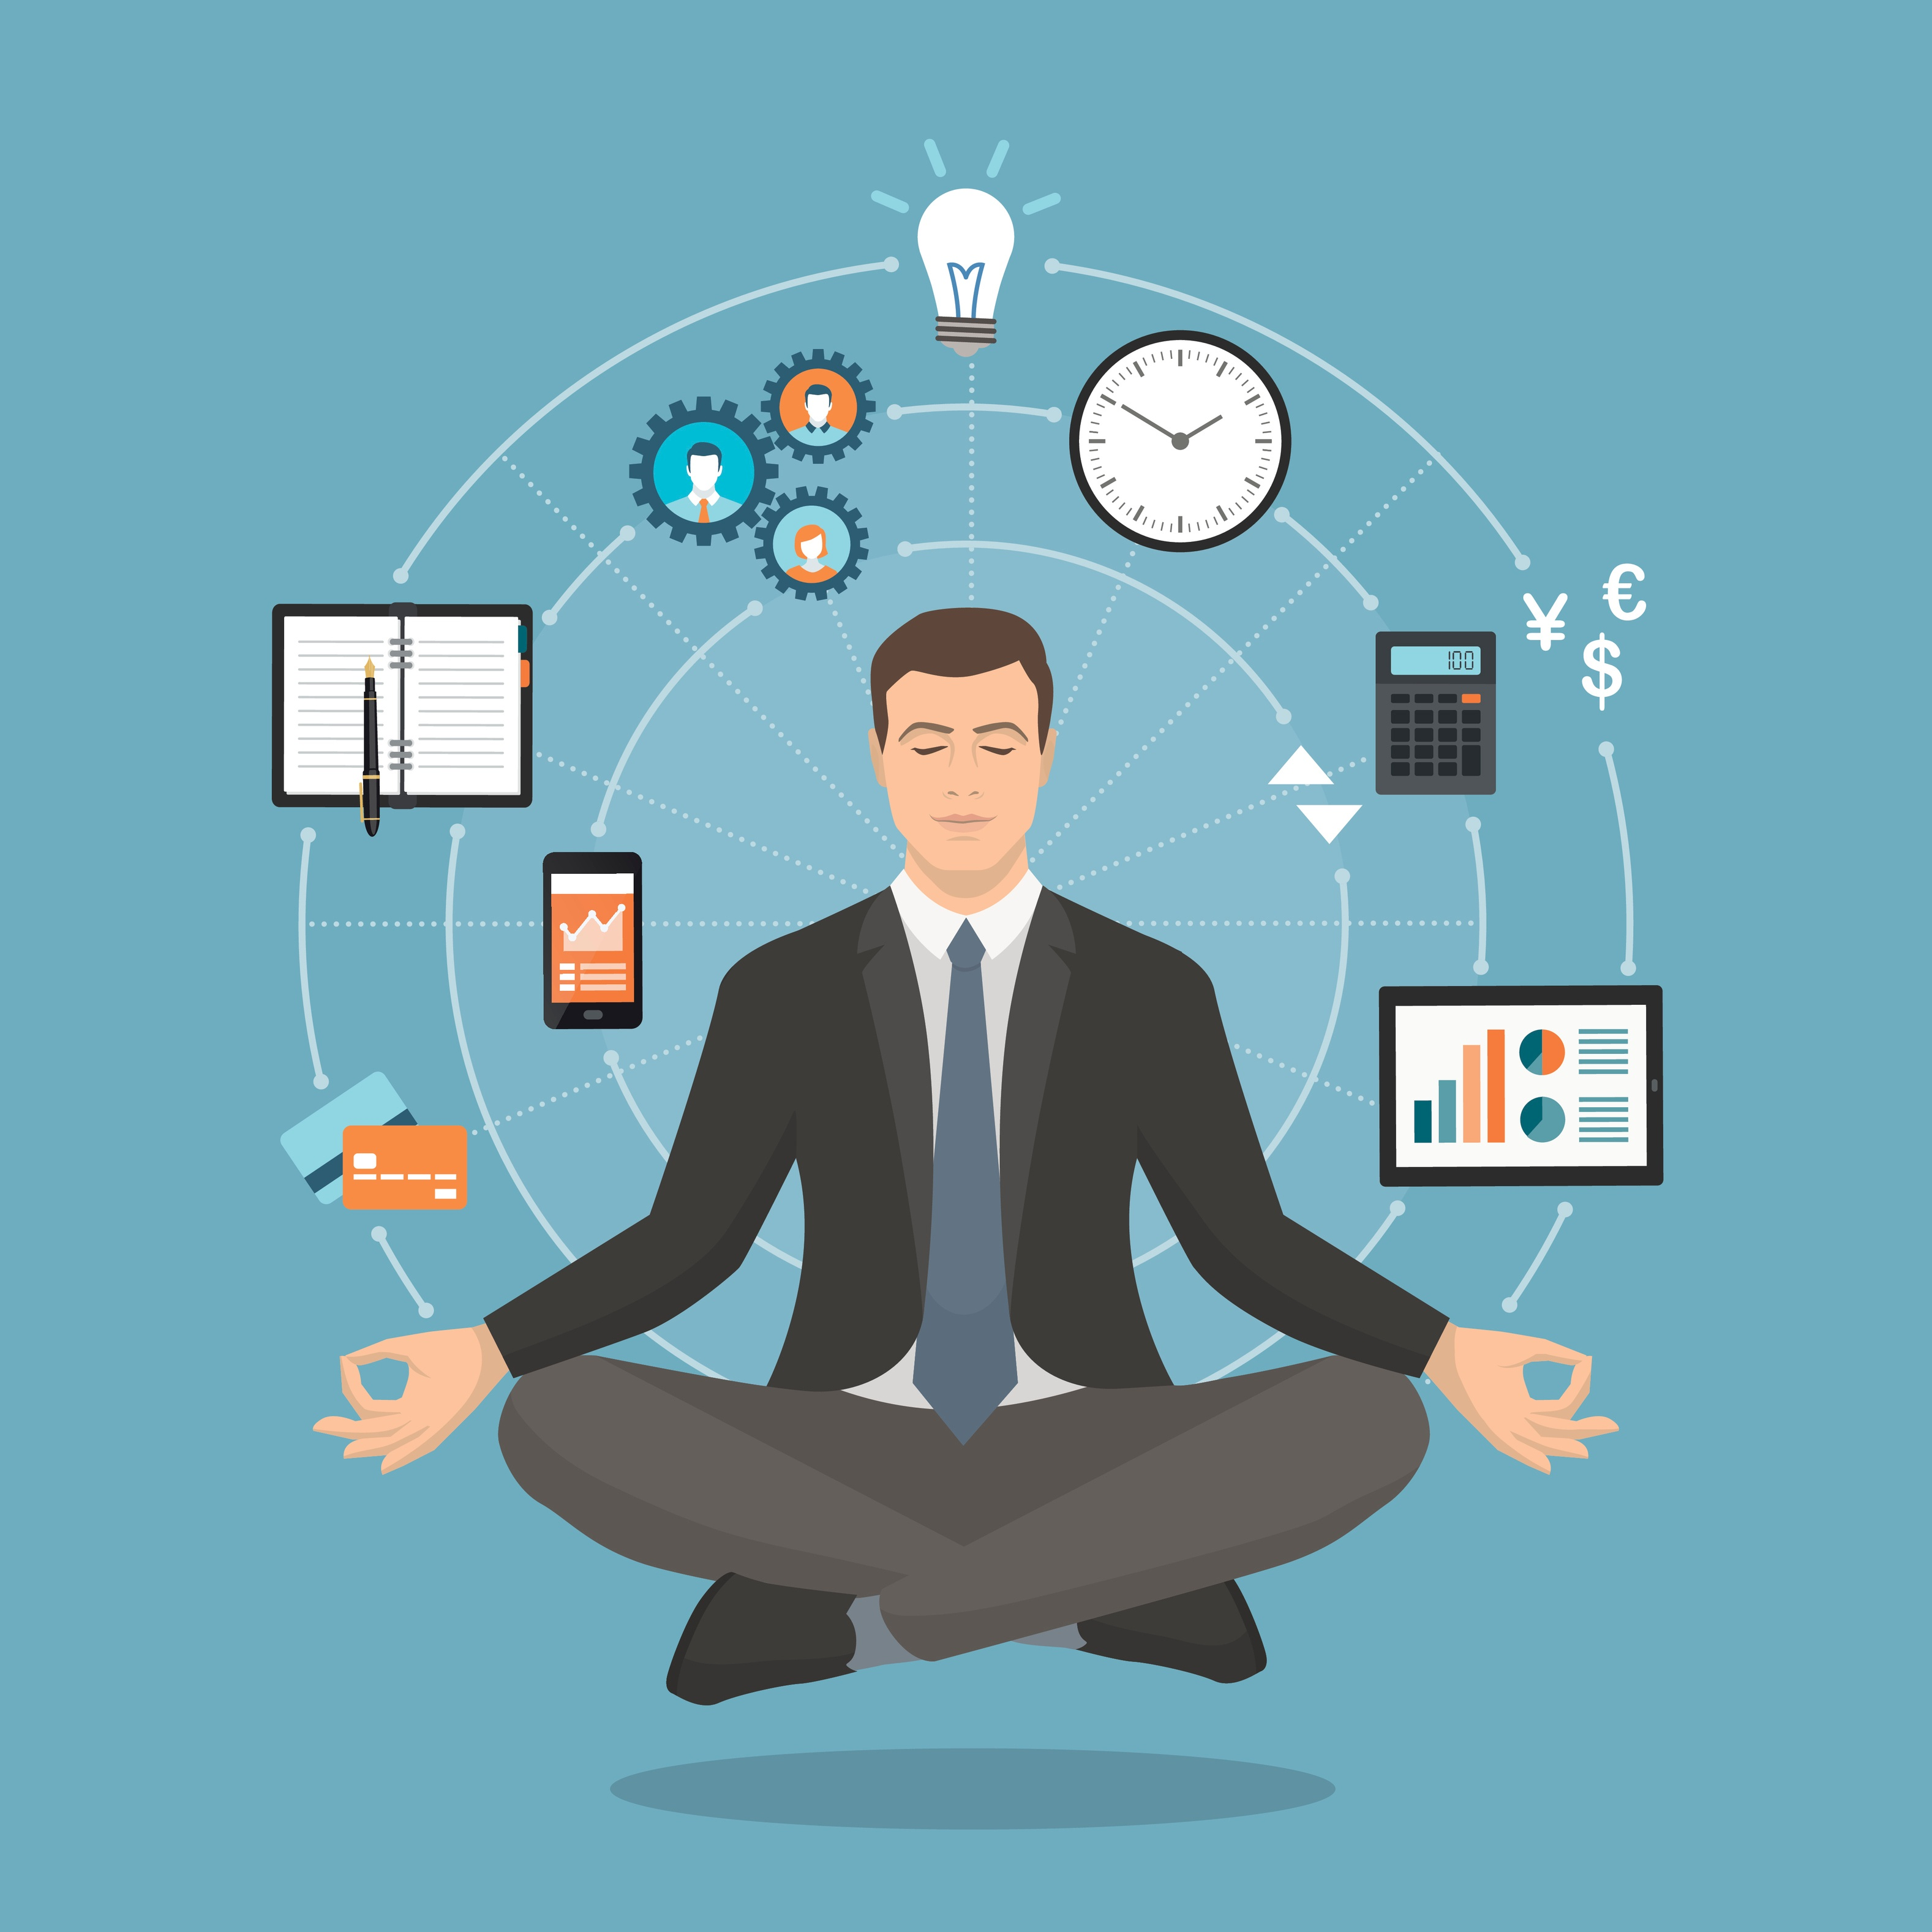 turn WFO and IVR mindfulness into action